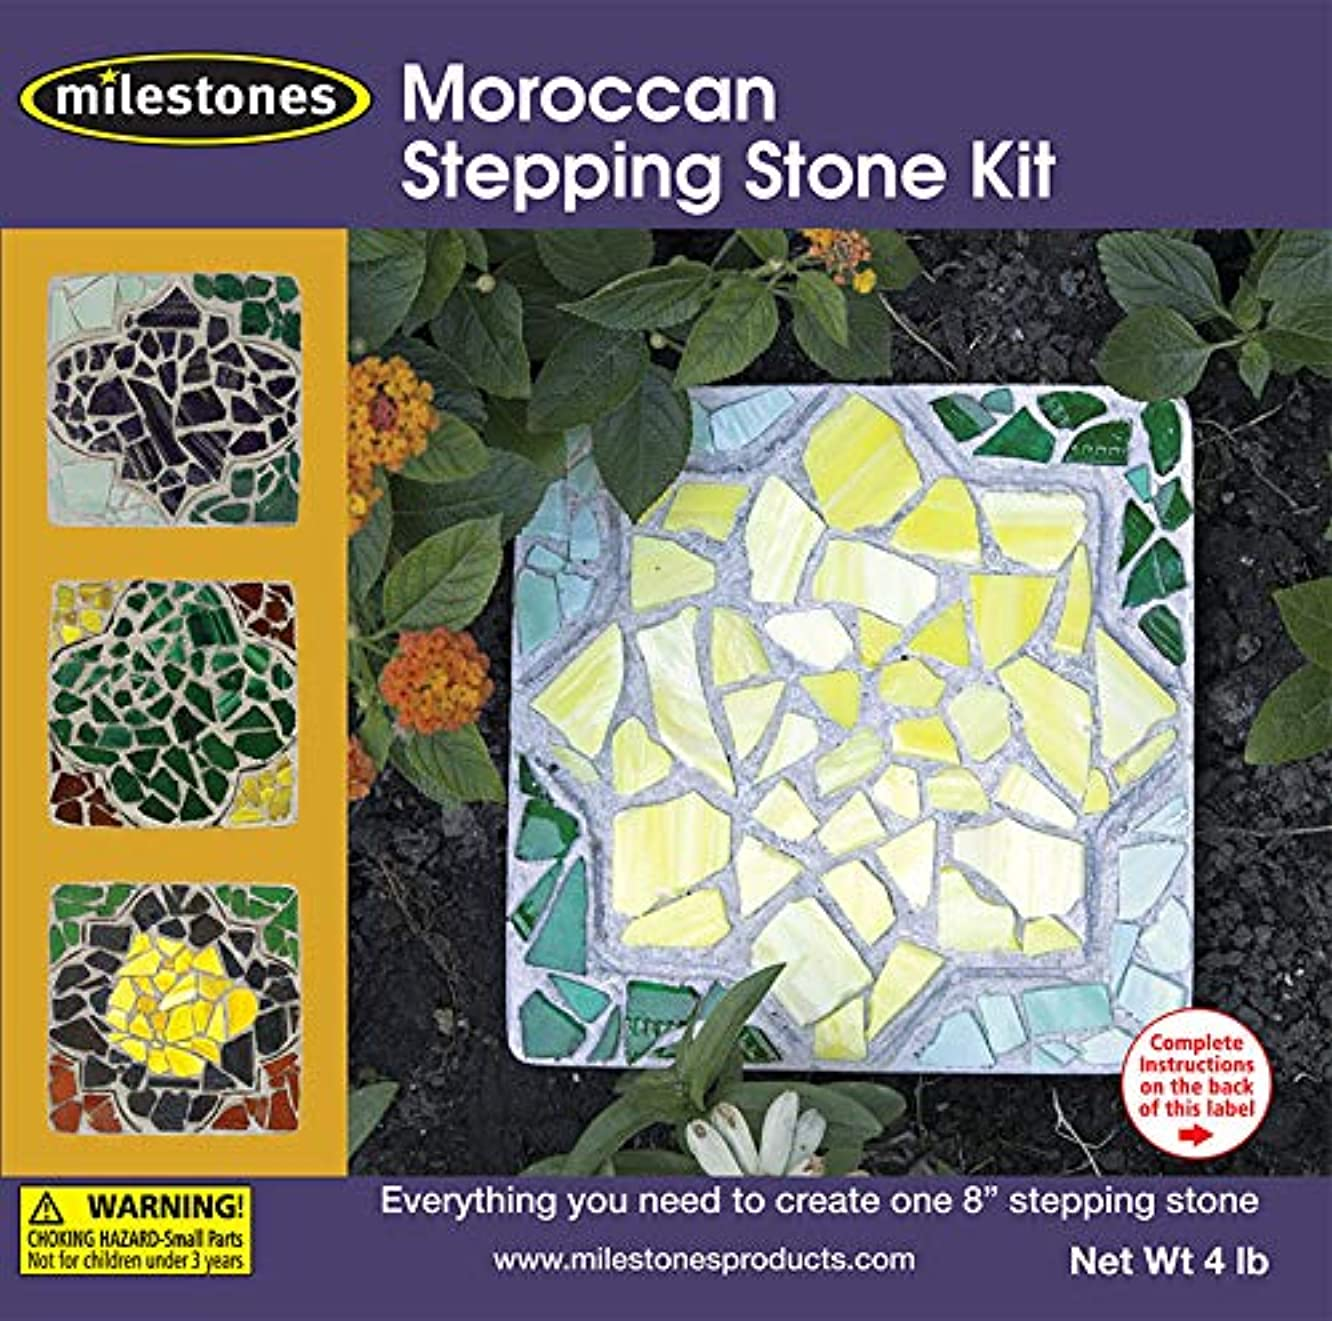 Midwest Products 90115214 Mosaic Stepping Stone Kit-Moroccan,